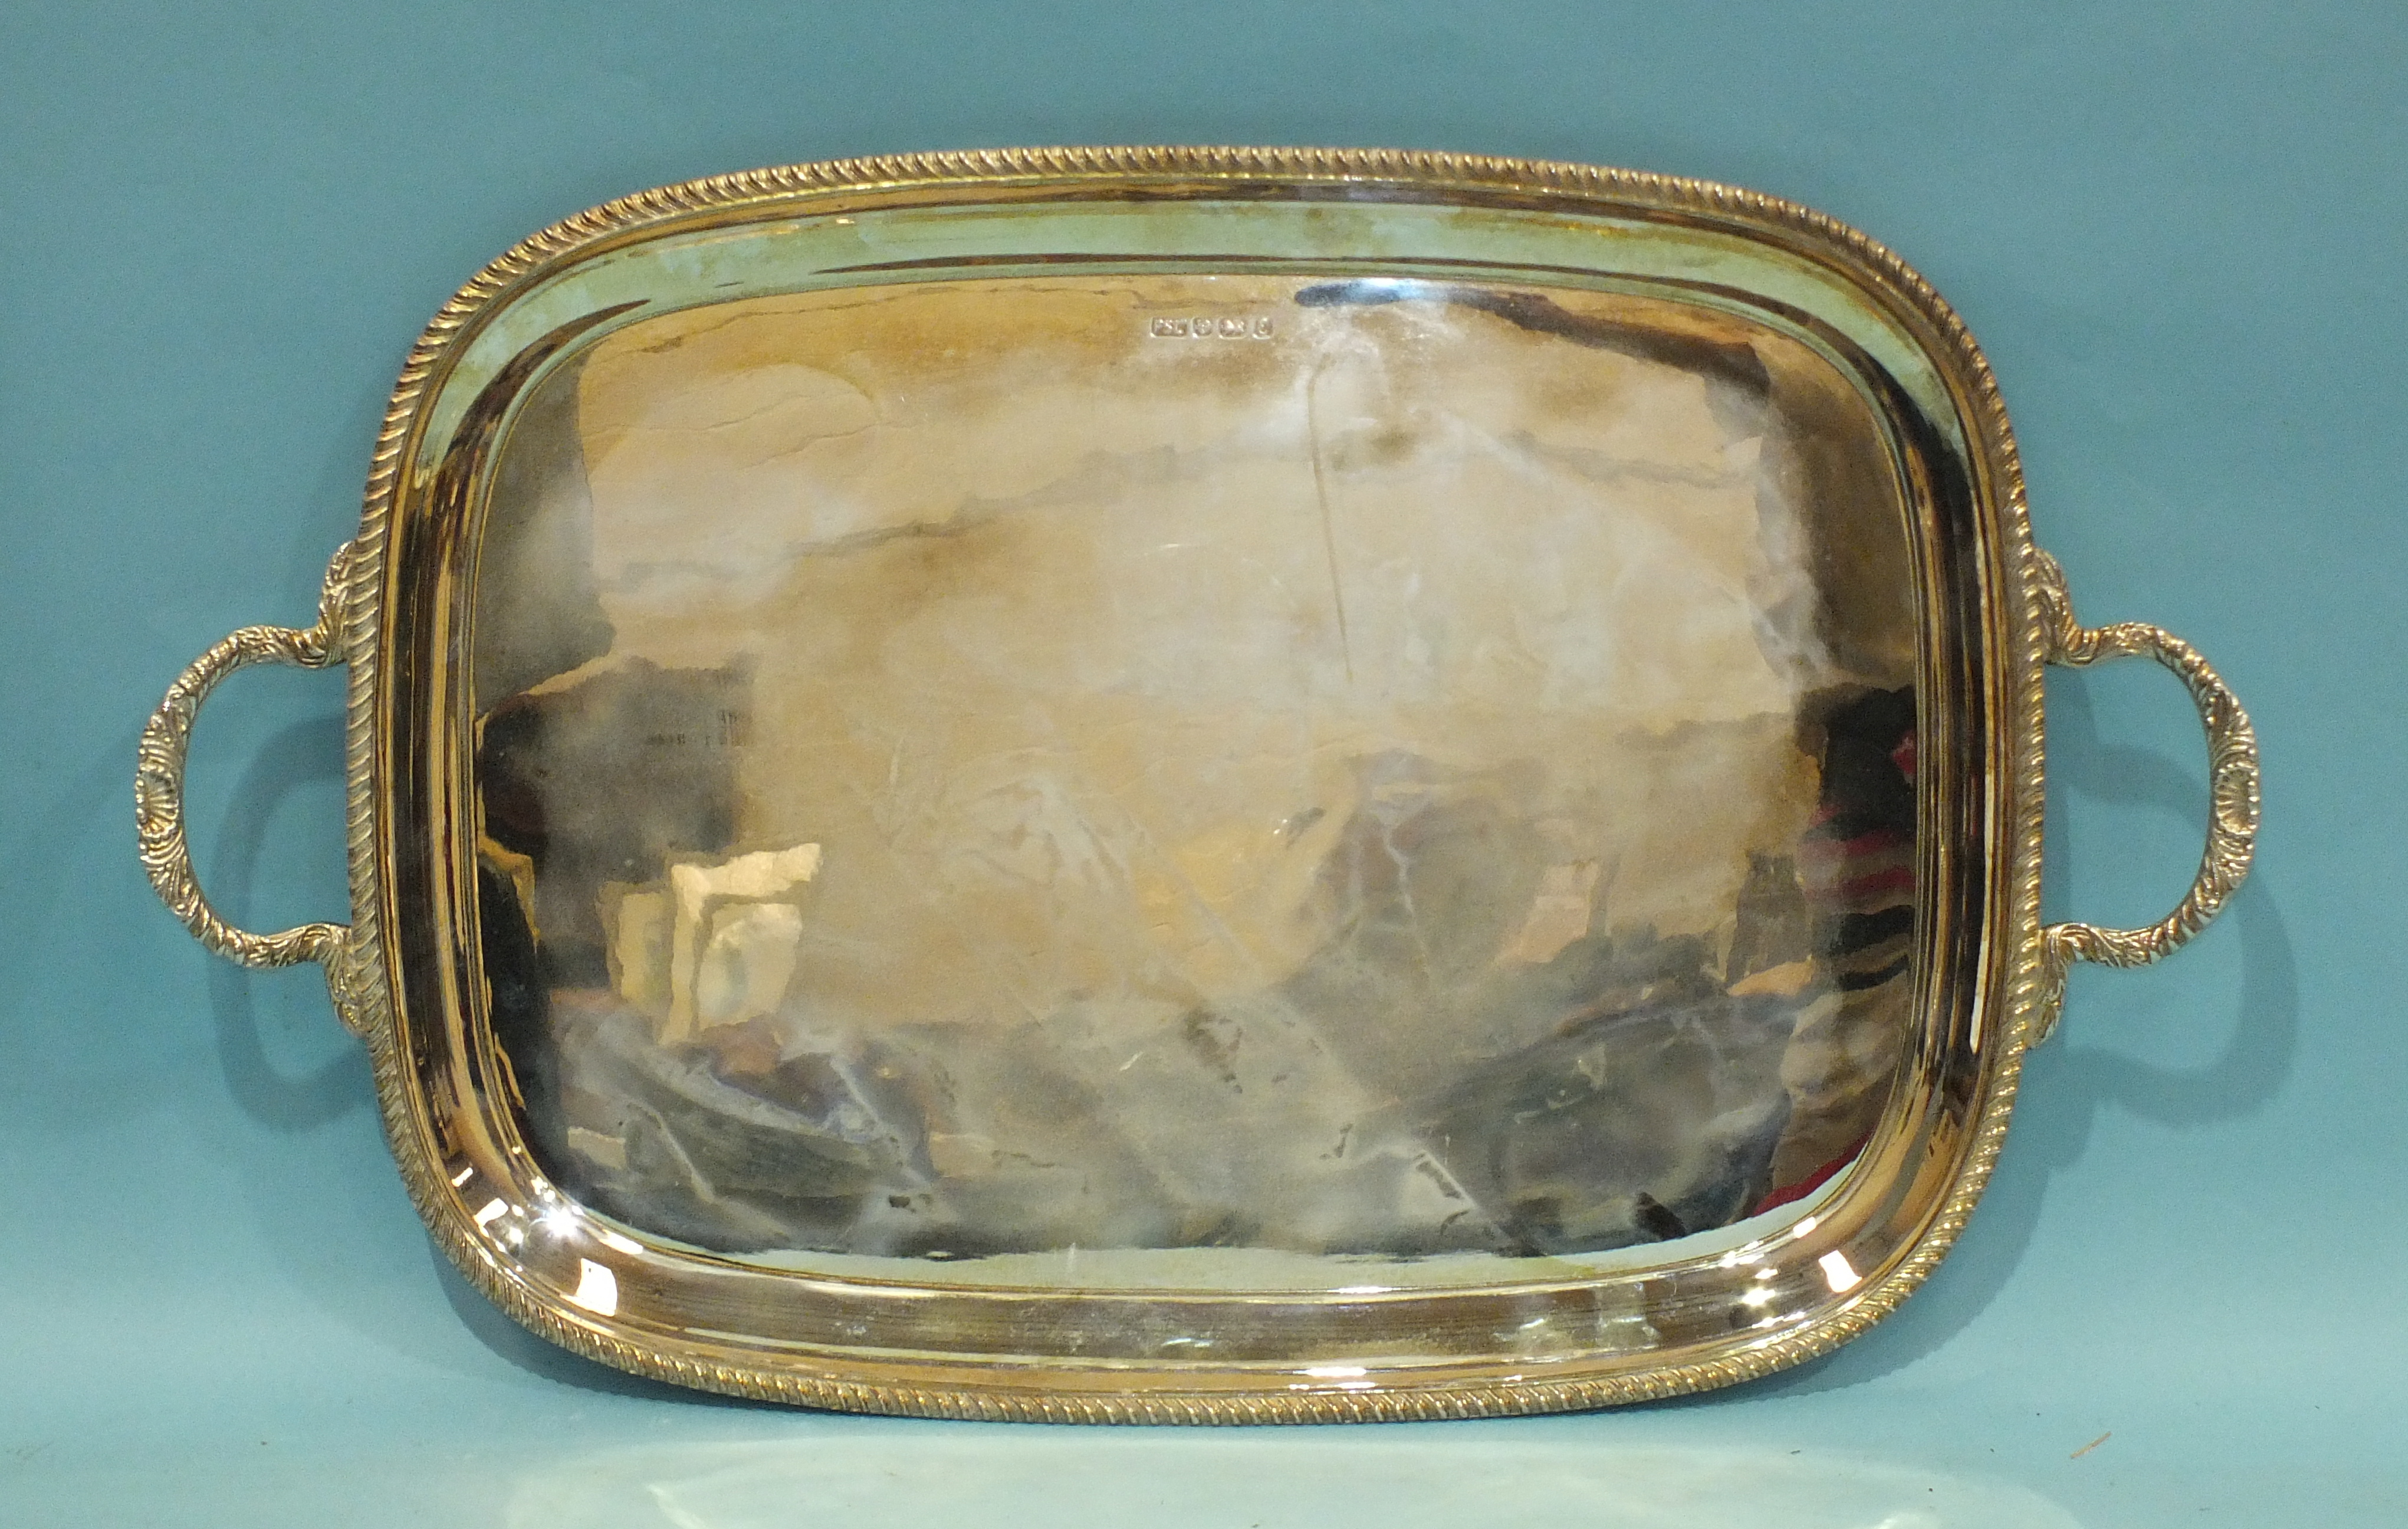 A modern rectangular silver tray with gadrooned border, makers Parkin Silversmiths Ltd, 56.5 x 34.